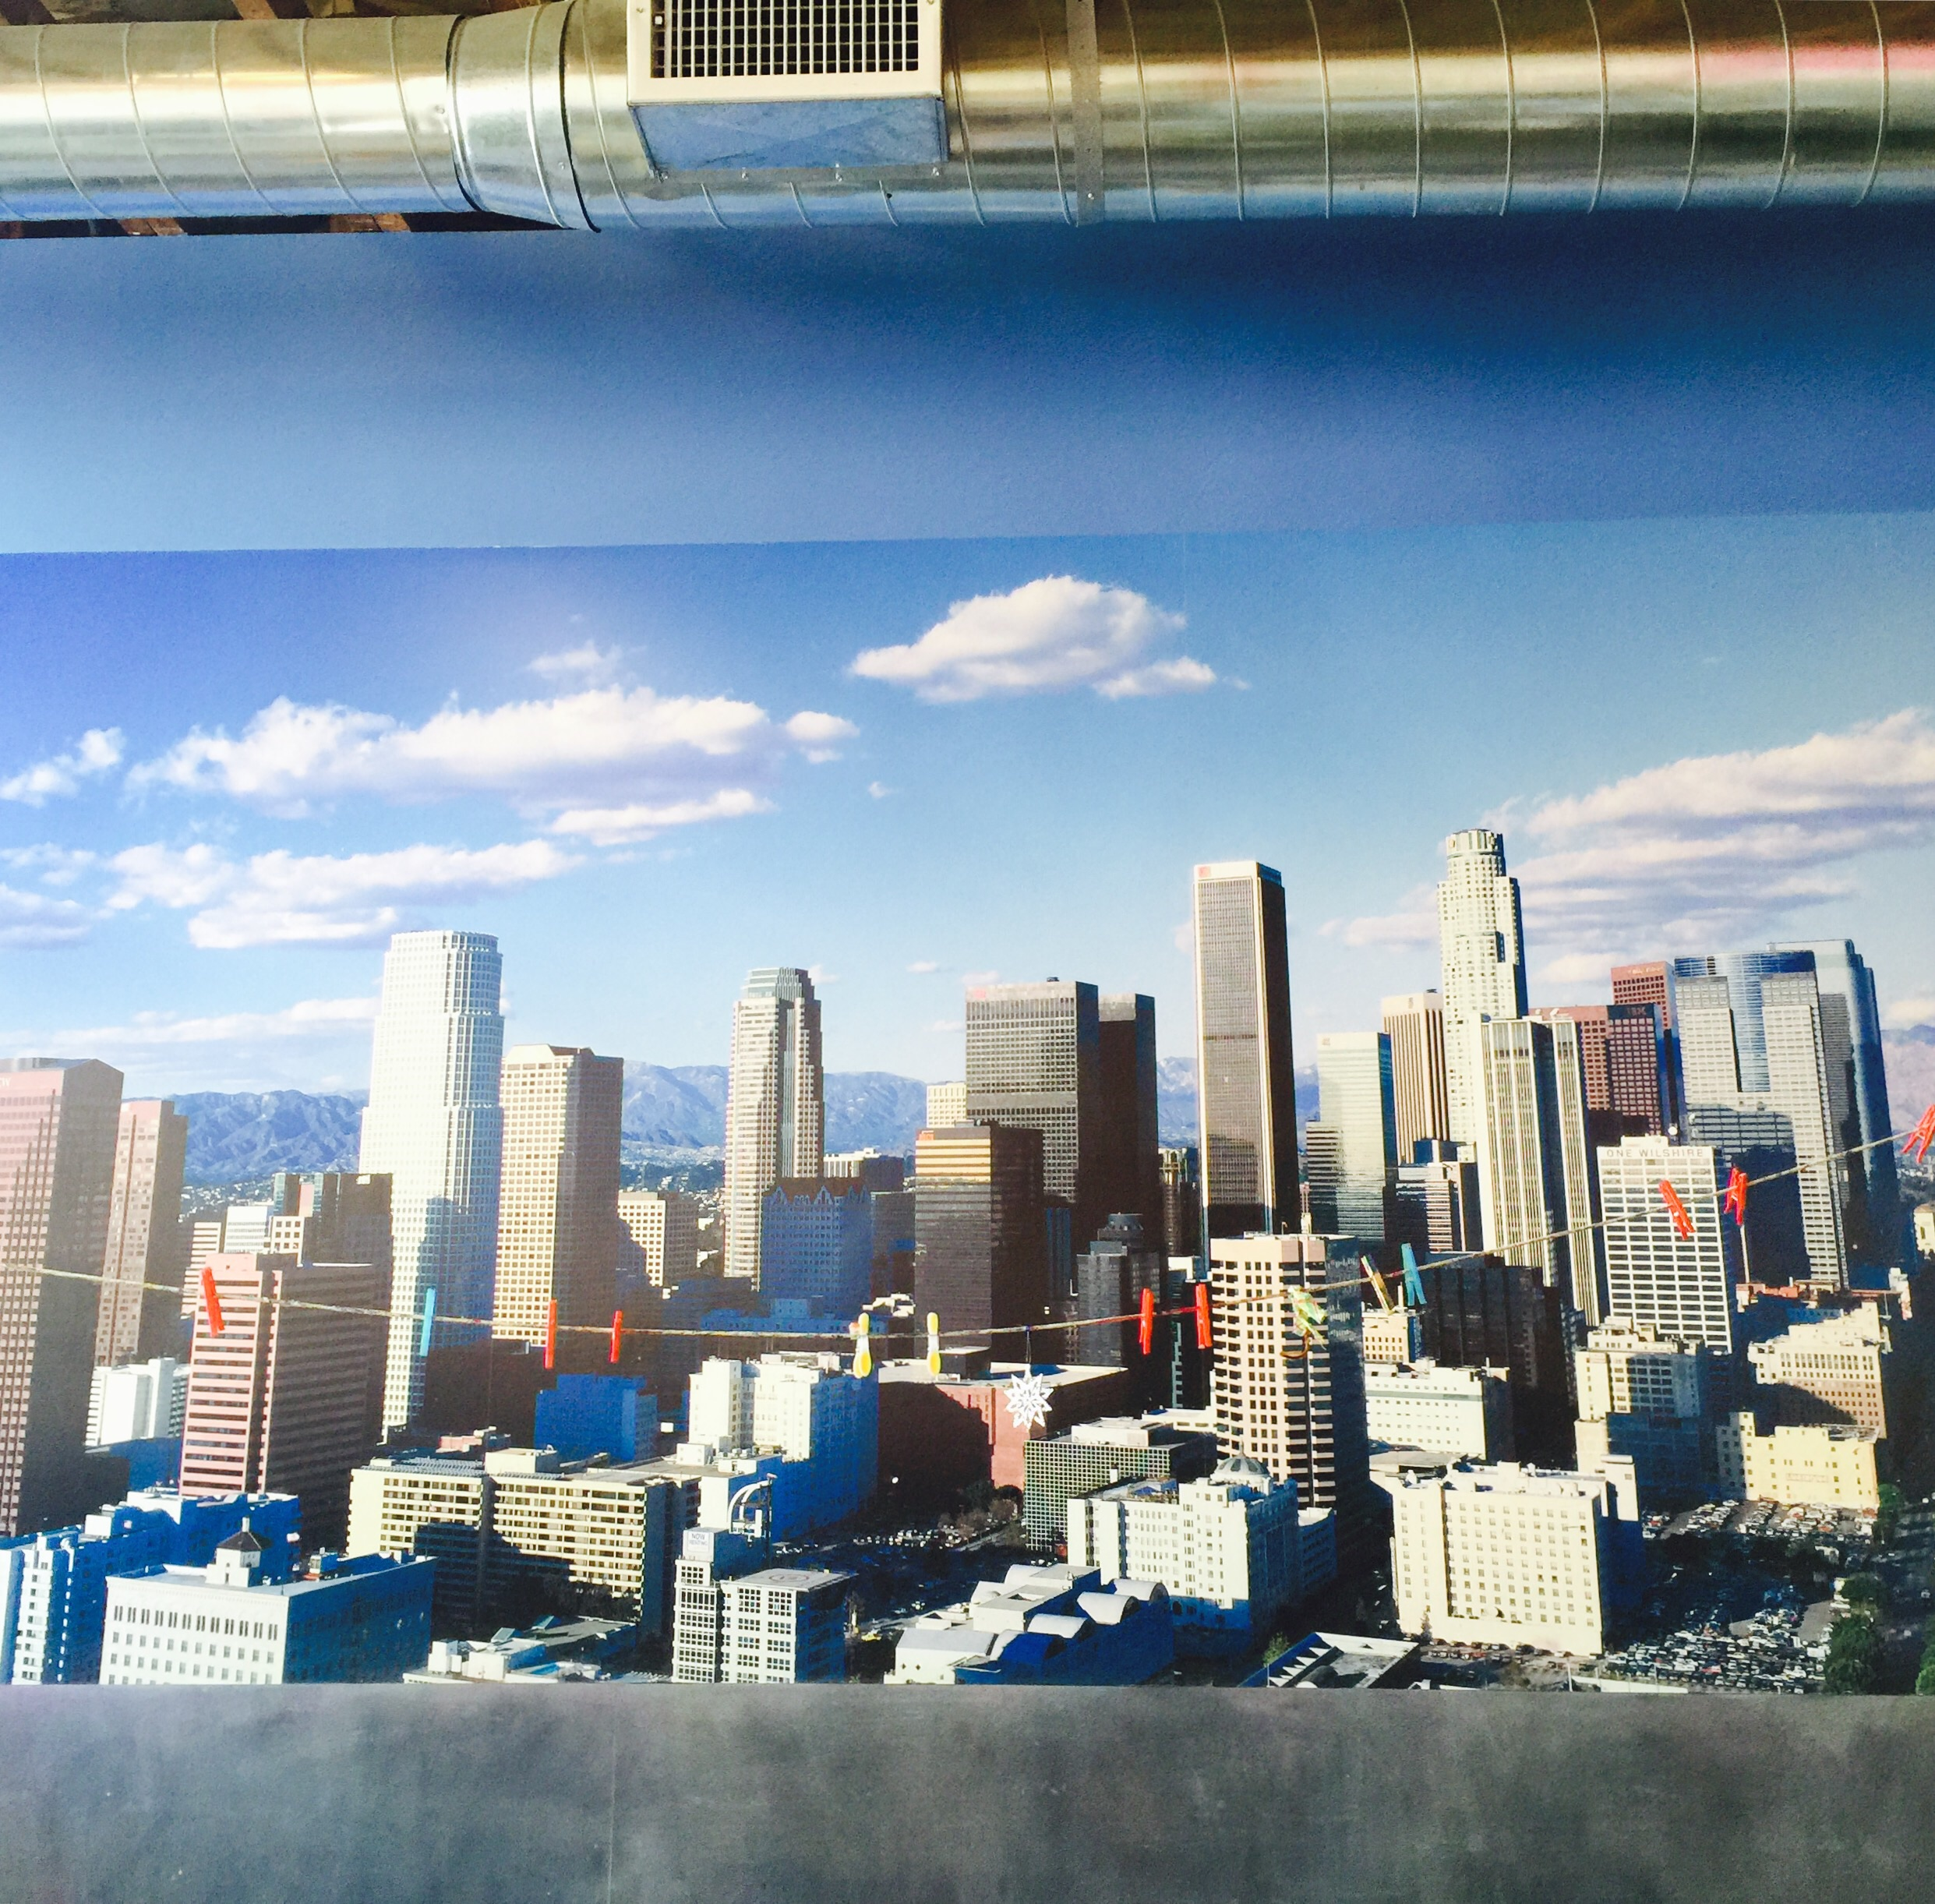 ( Ed. note: neither of our boys painted this. Nor is it the view from Play. It's just a big, cool, photo in the studio.)